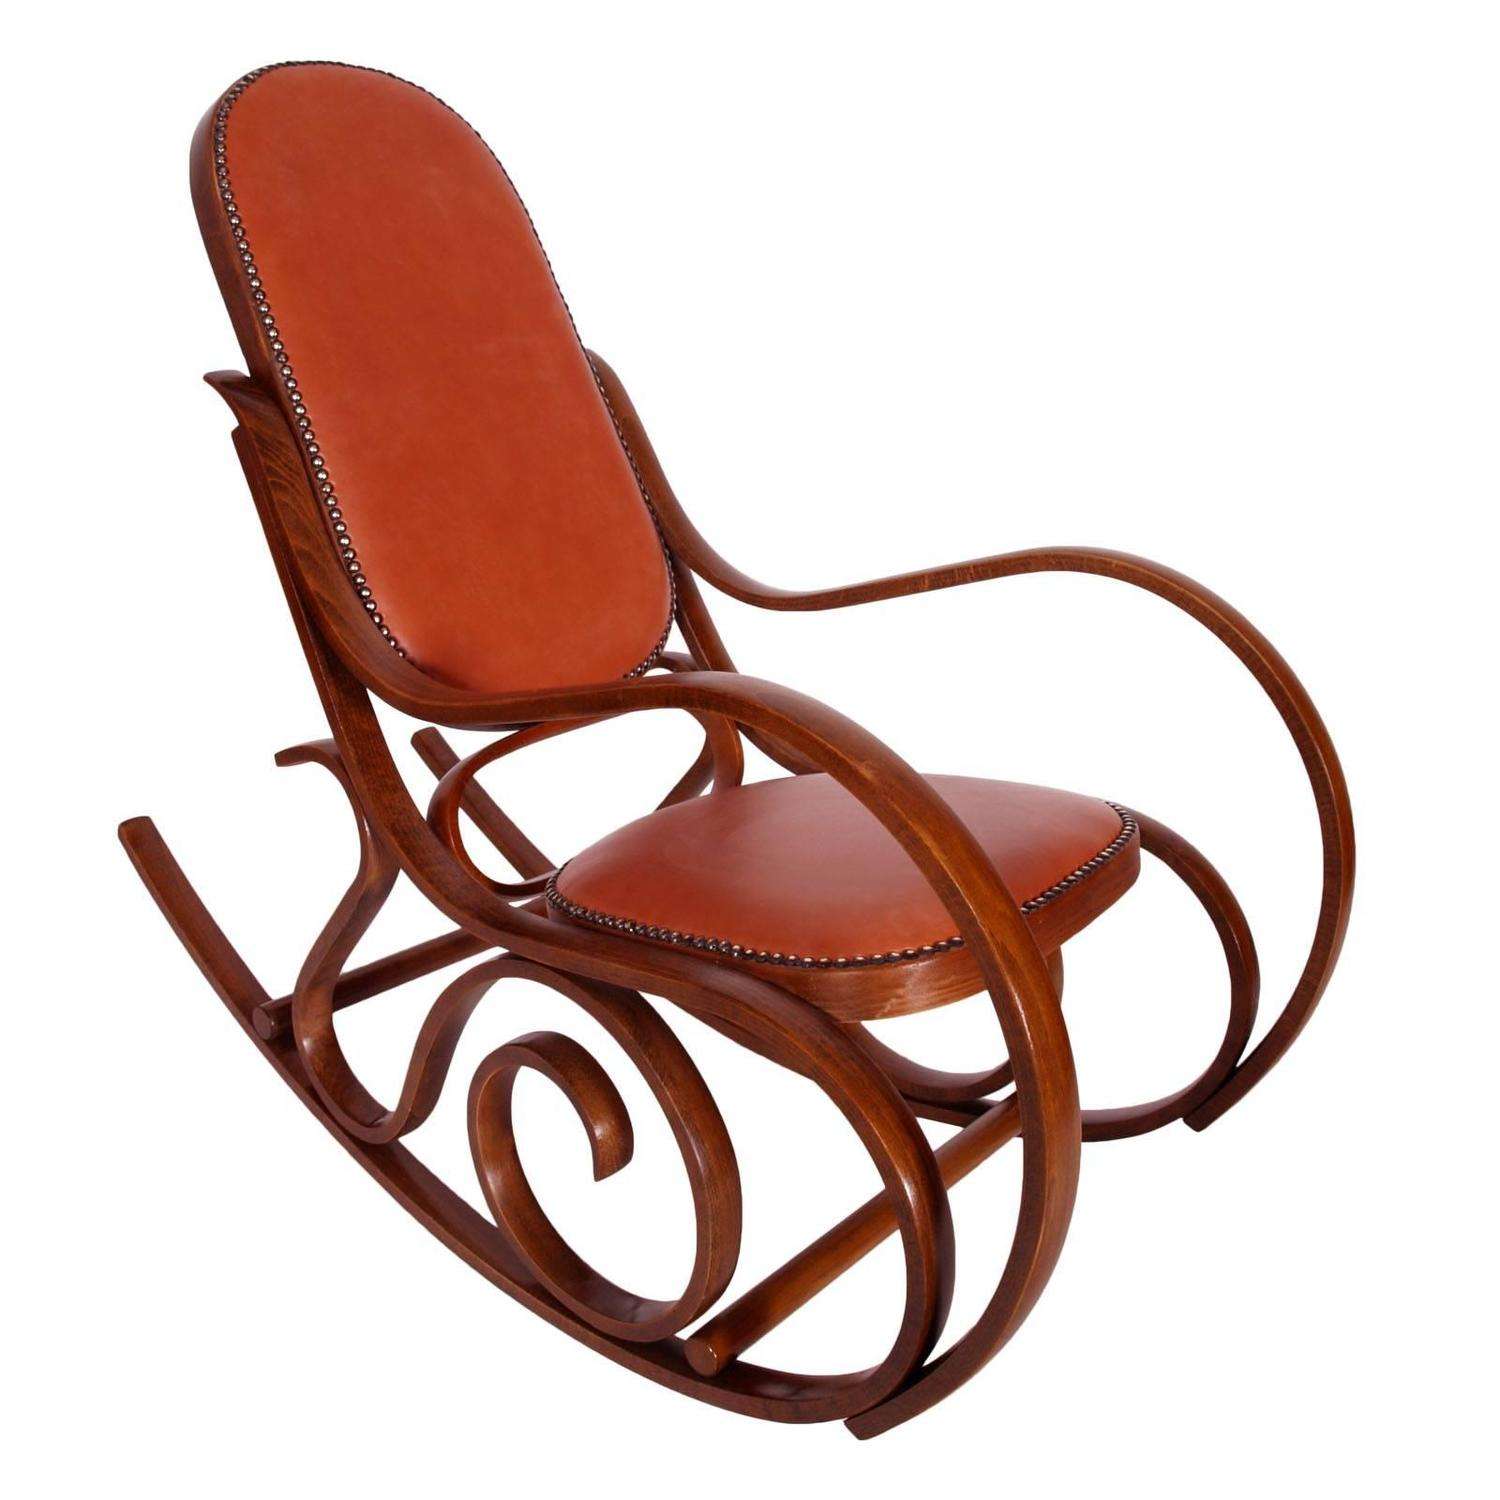 Early 20th Century Art Nouveau Thonet Rocking Chair in Steam Bent Beechwood - Antique Thonet Model #10 Bentwood Rocking Chair; Salvatore Leone